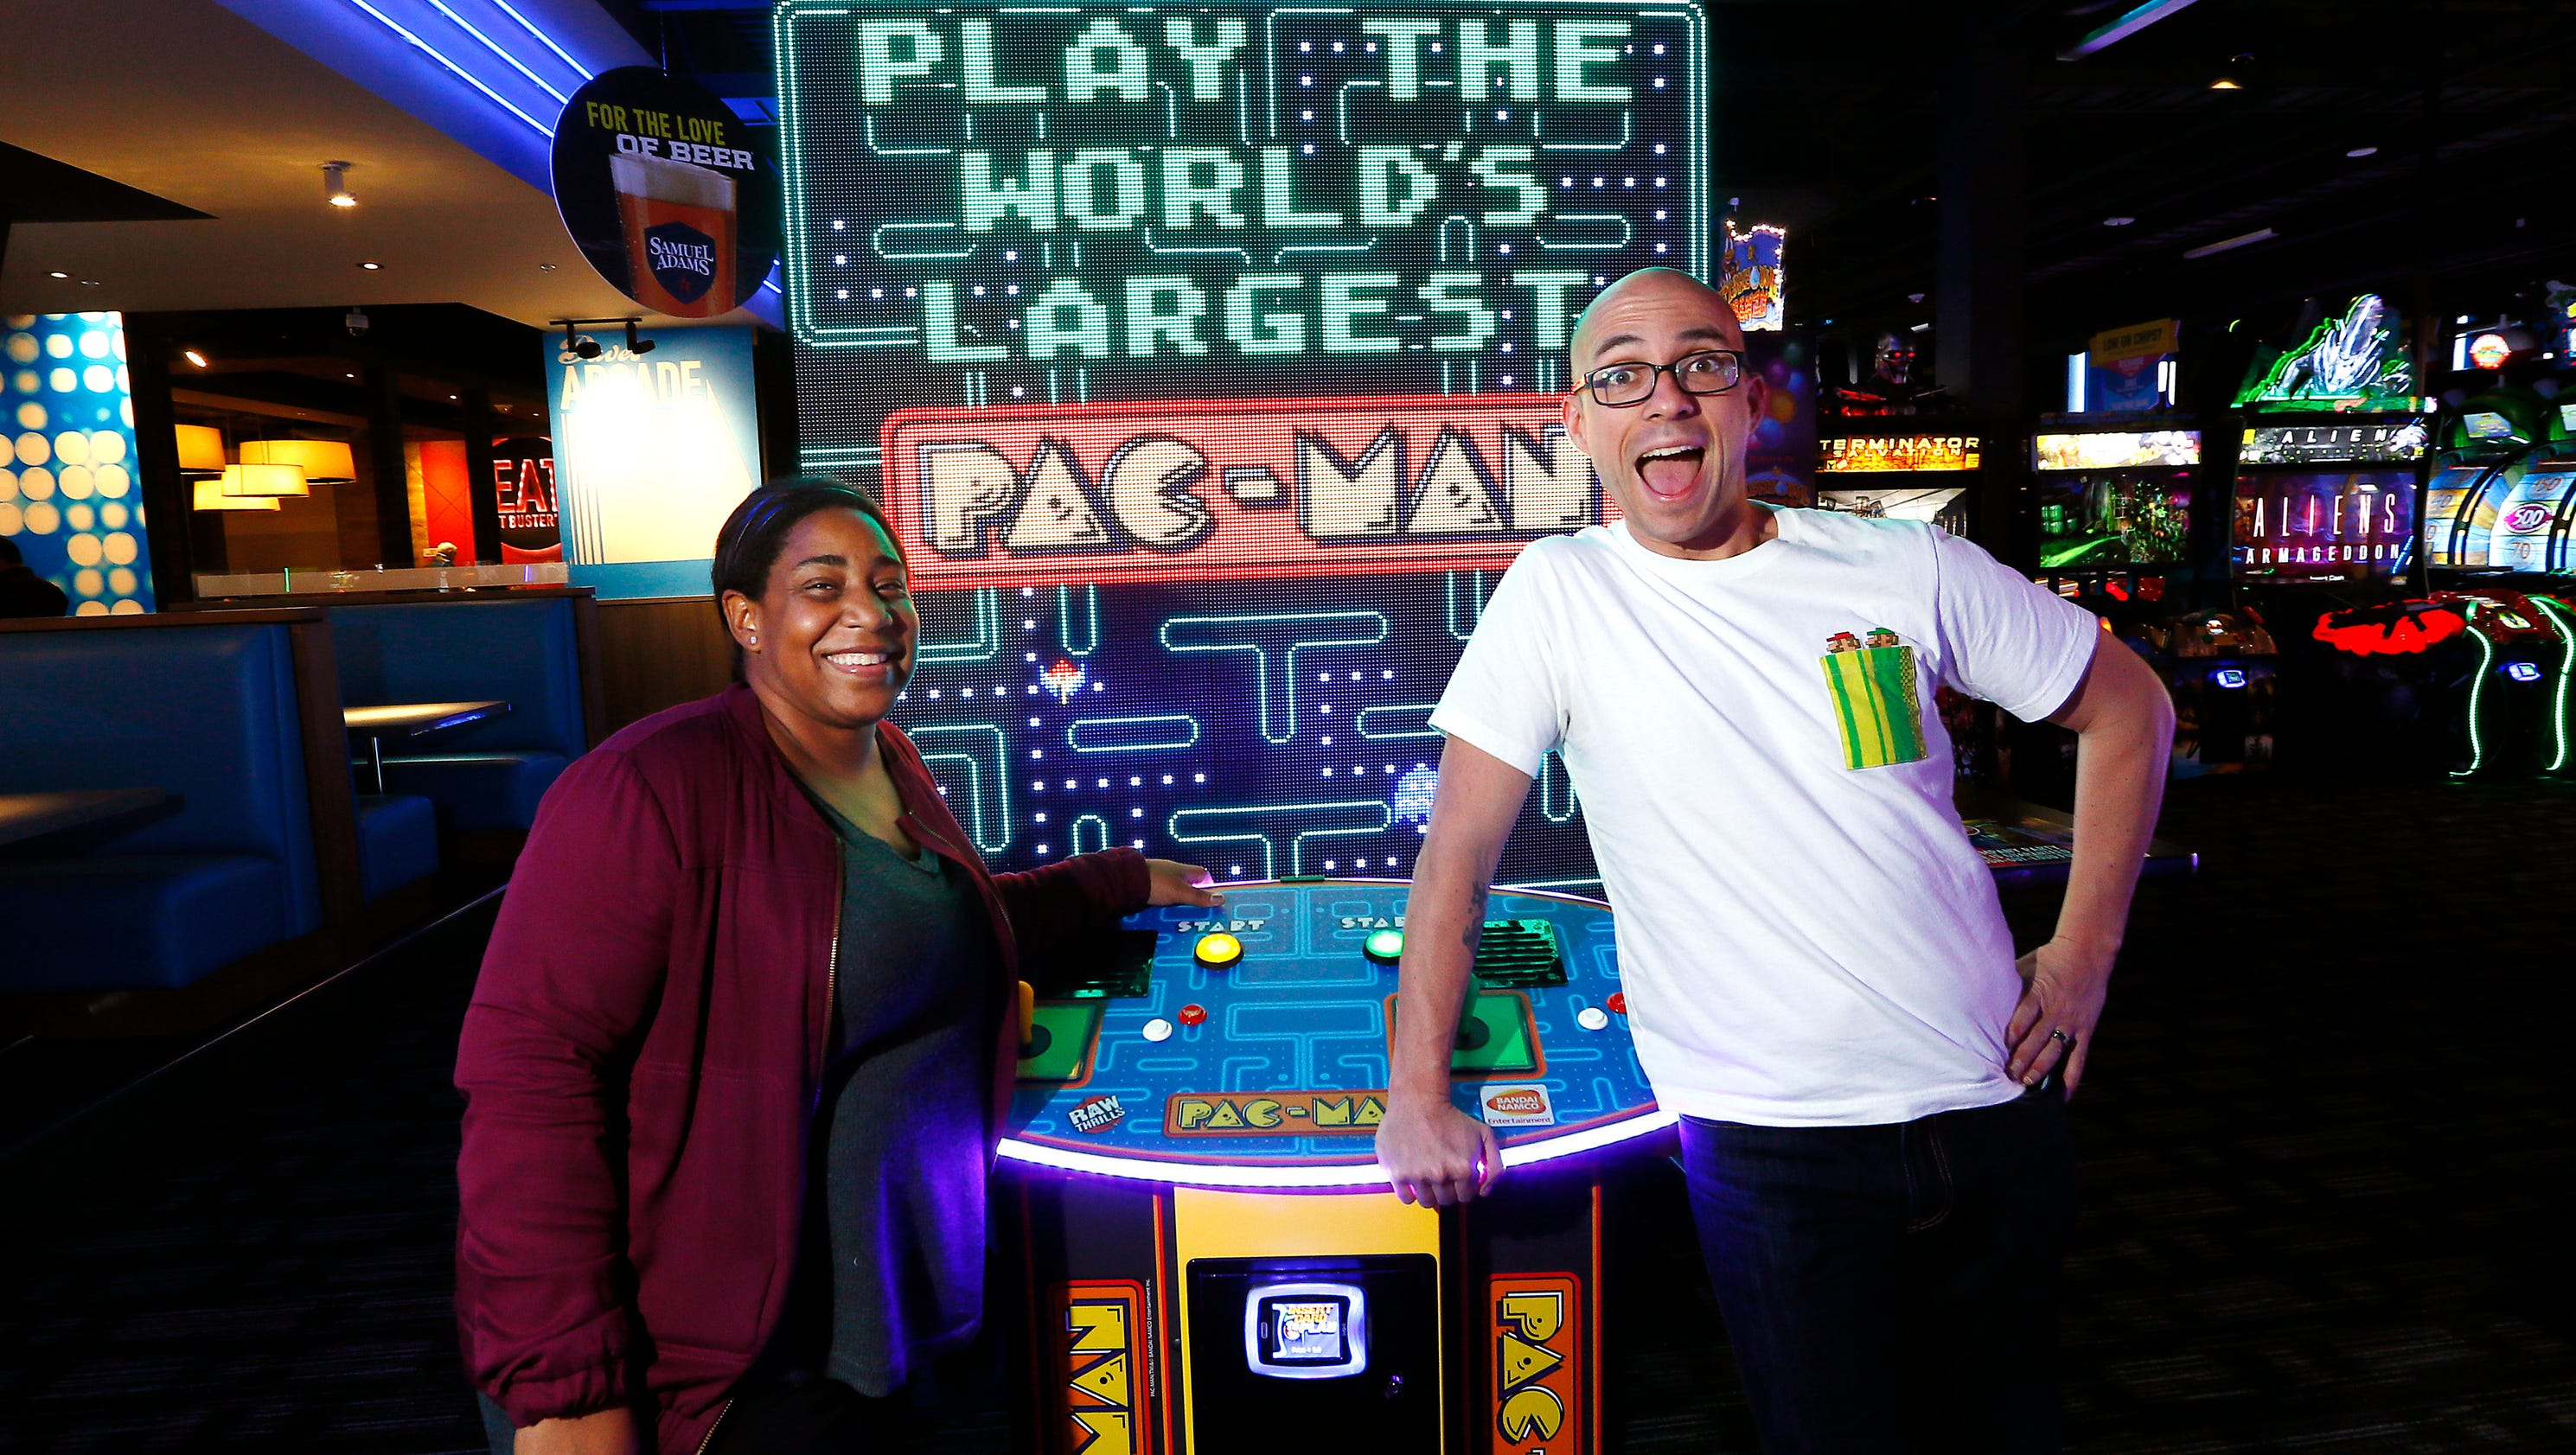 Dave & Buster's is a 40, sq. ft. upscale arcade emporium filled with three stories of entertainment, including more than classic and modern video and arcade games. Today's Groupon grants chips and 10 bonus chips worth of playing bestnfil5d.ga: $